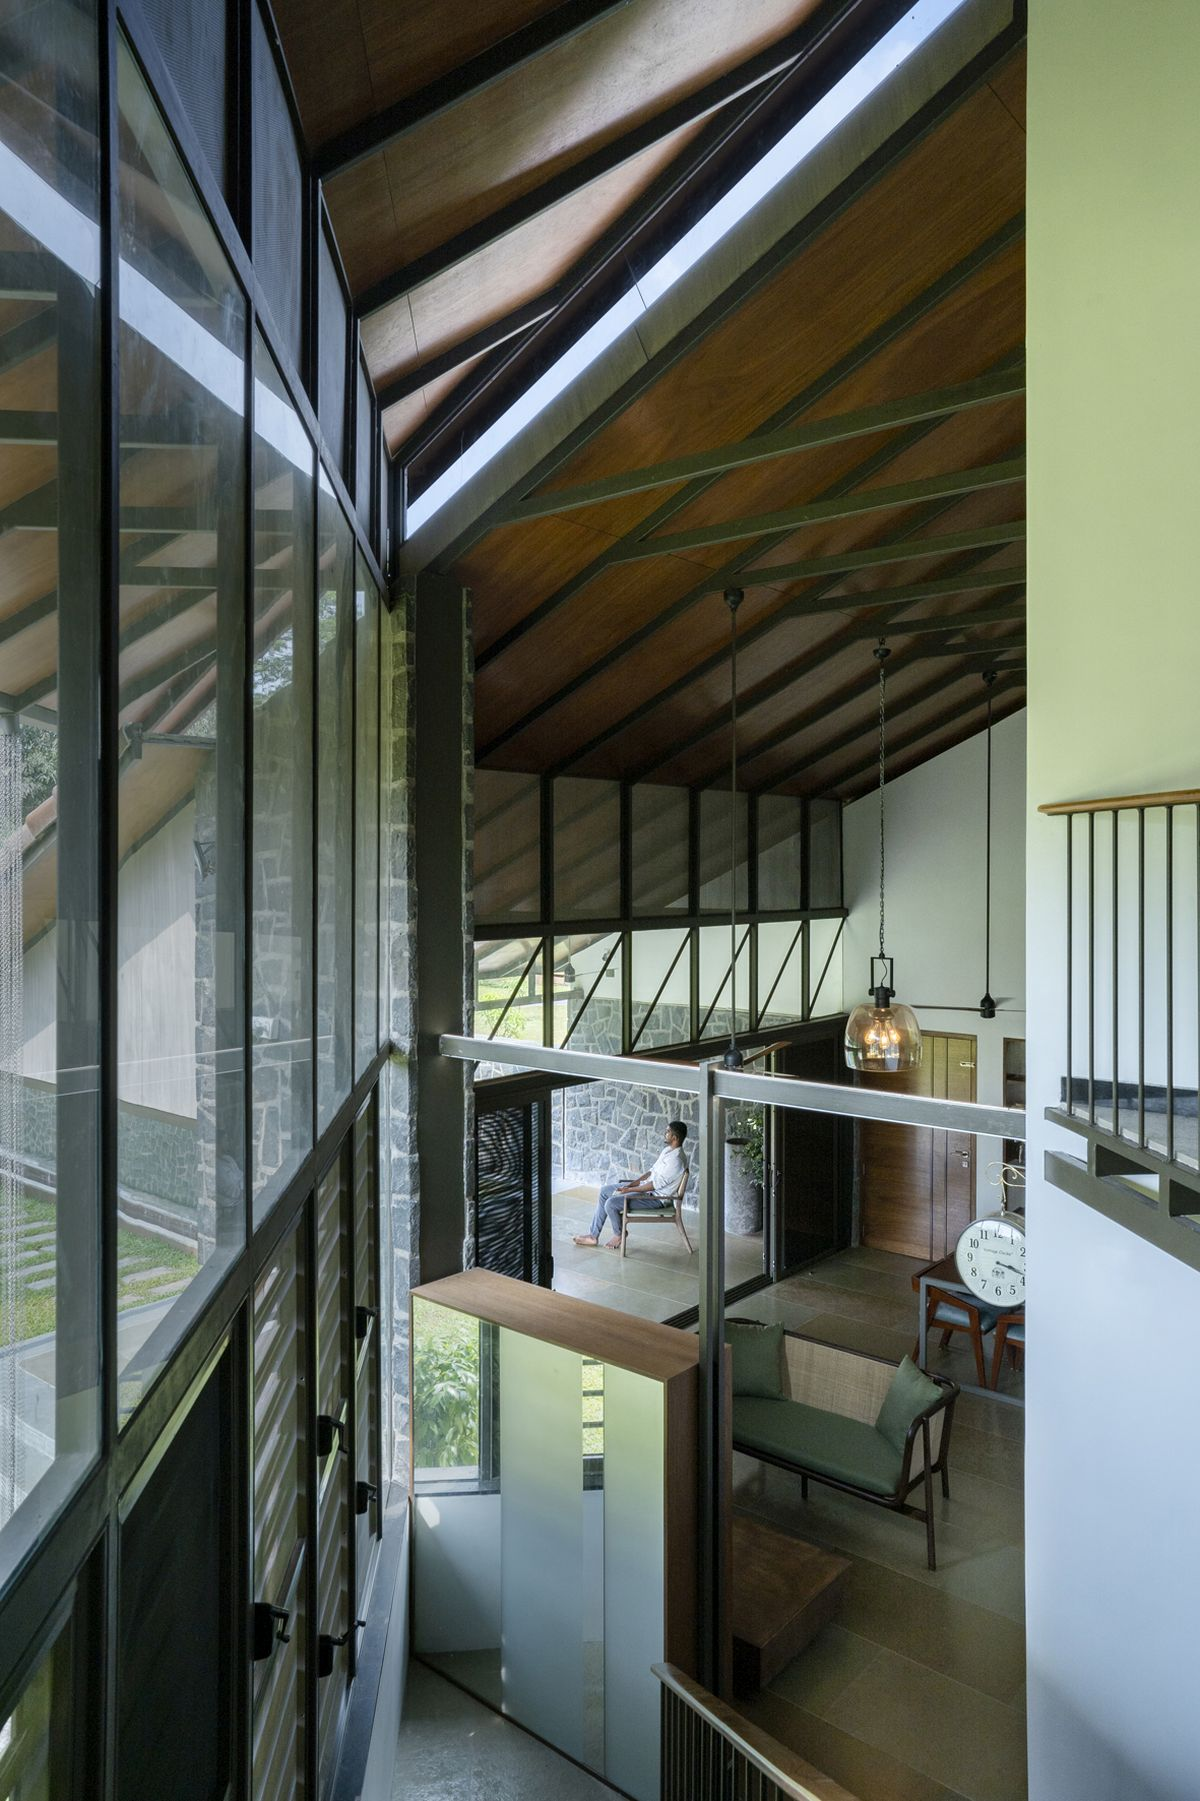 Dr Maani House 2020, at Koothattukulam, by RGB Architecture Studio 8